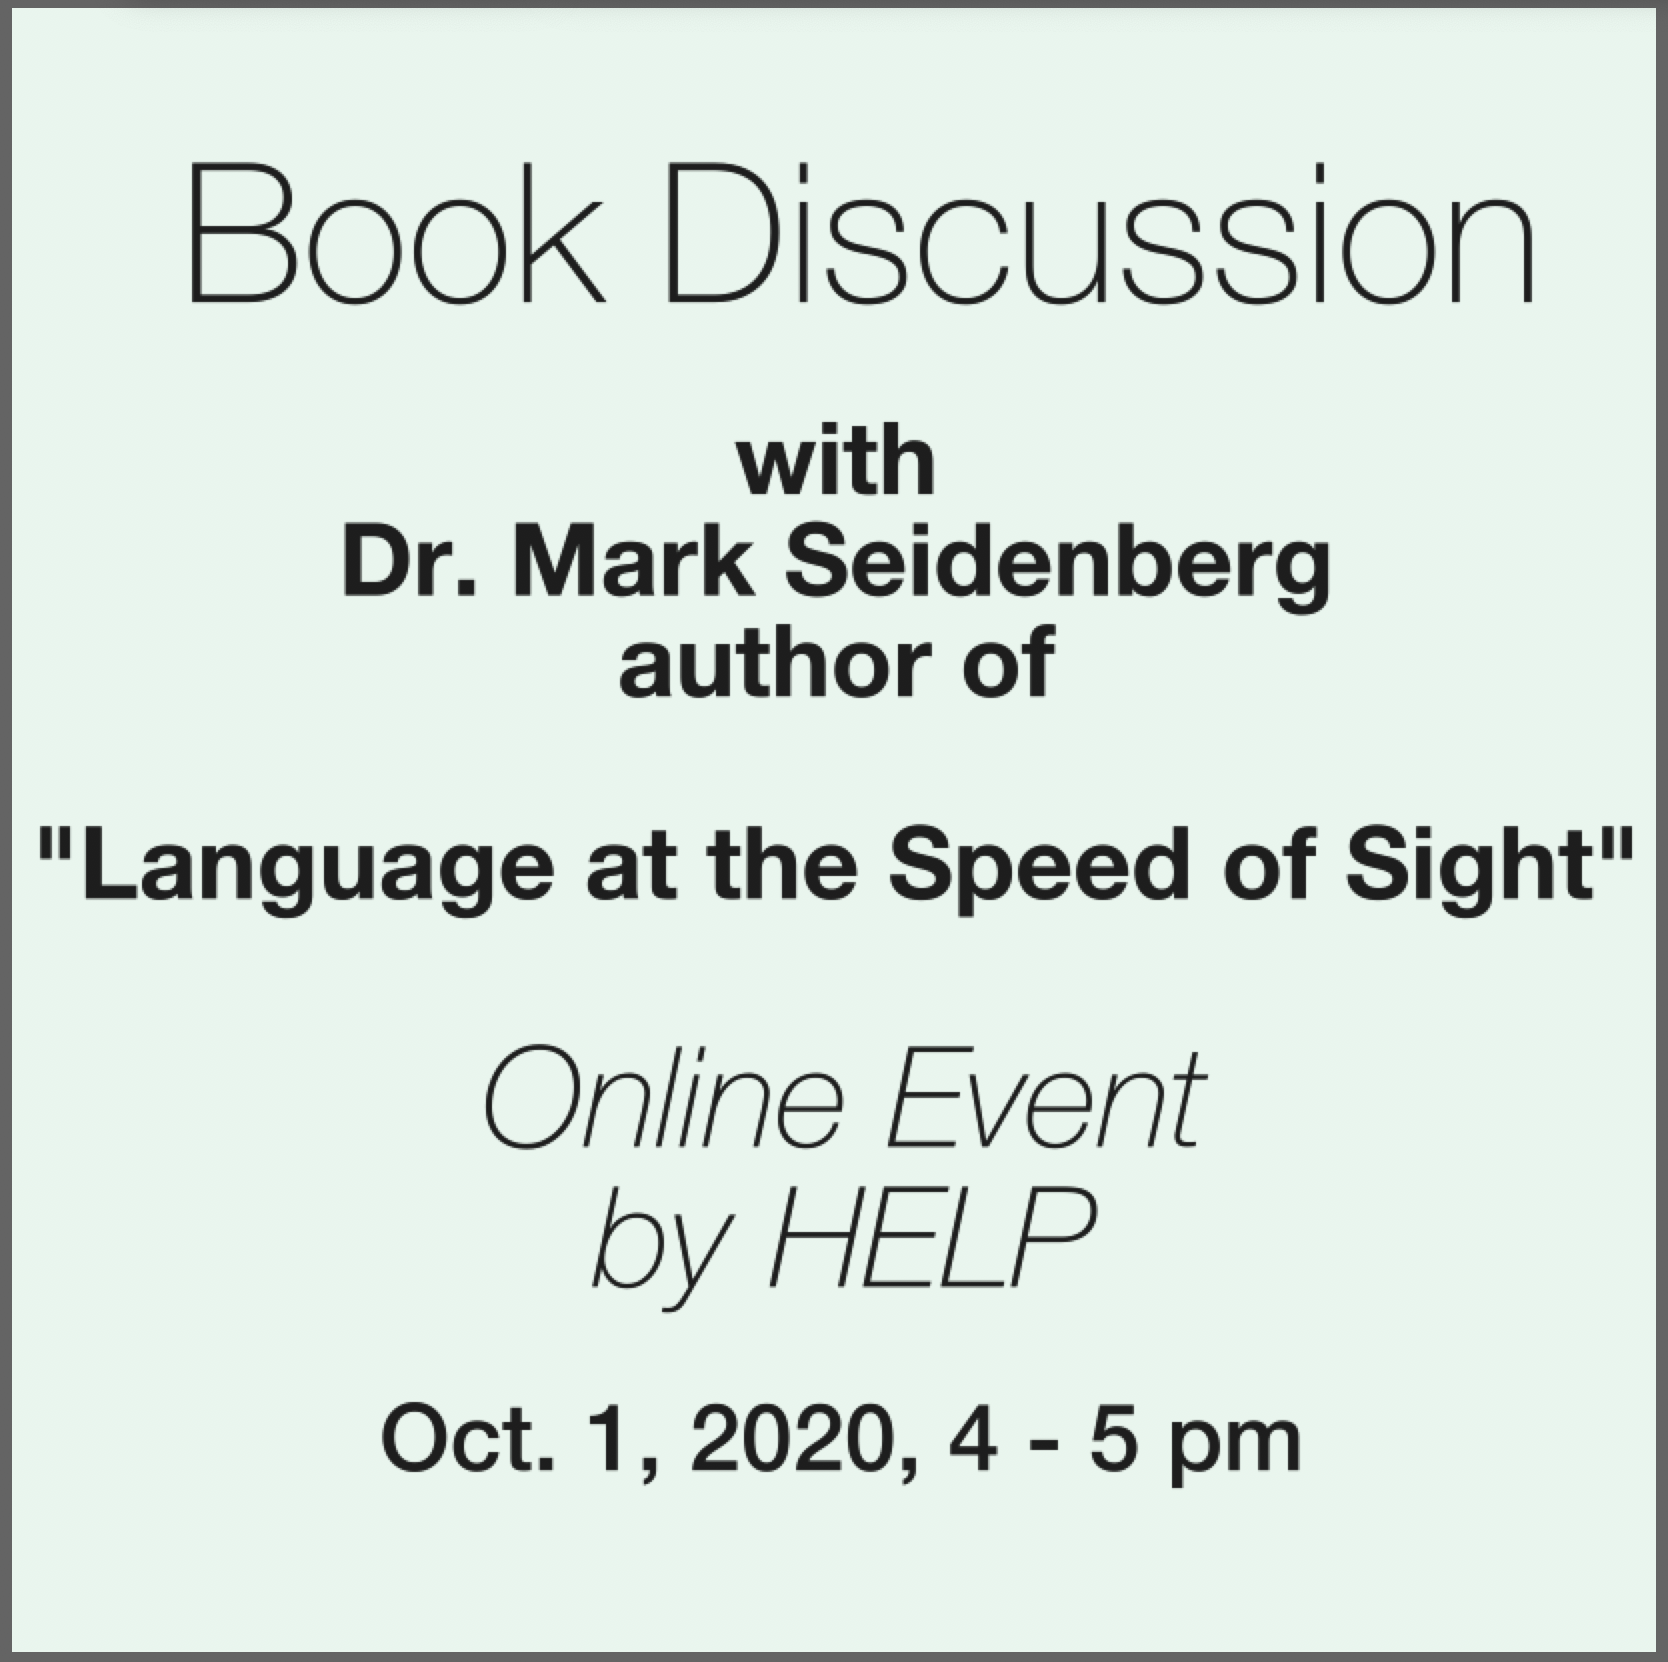 Mark Seidenberg book discussion